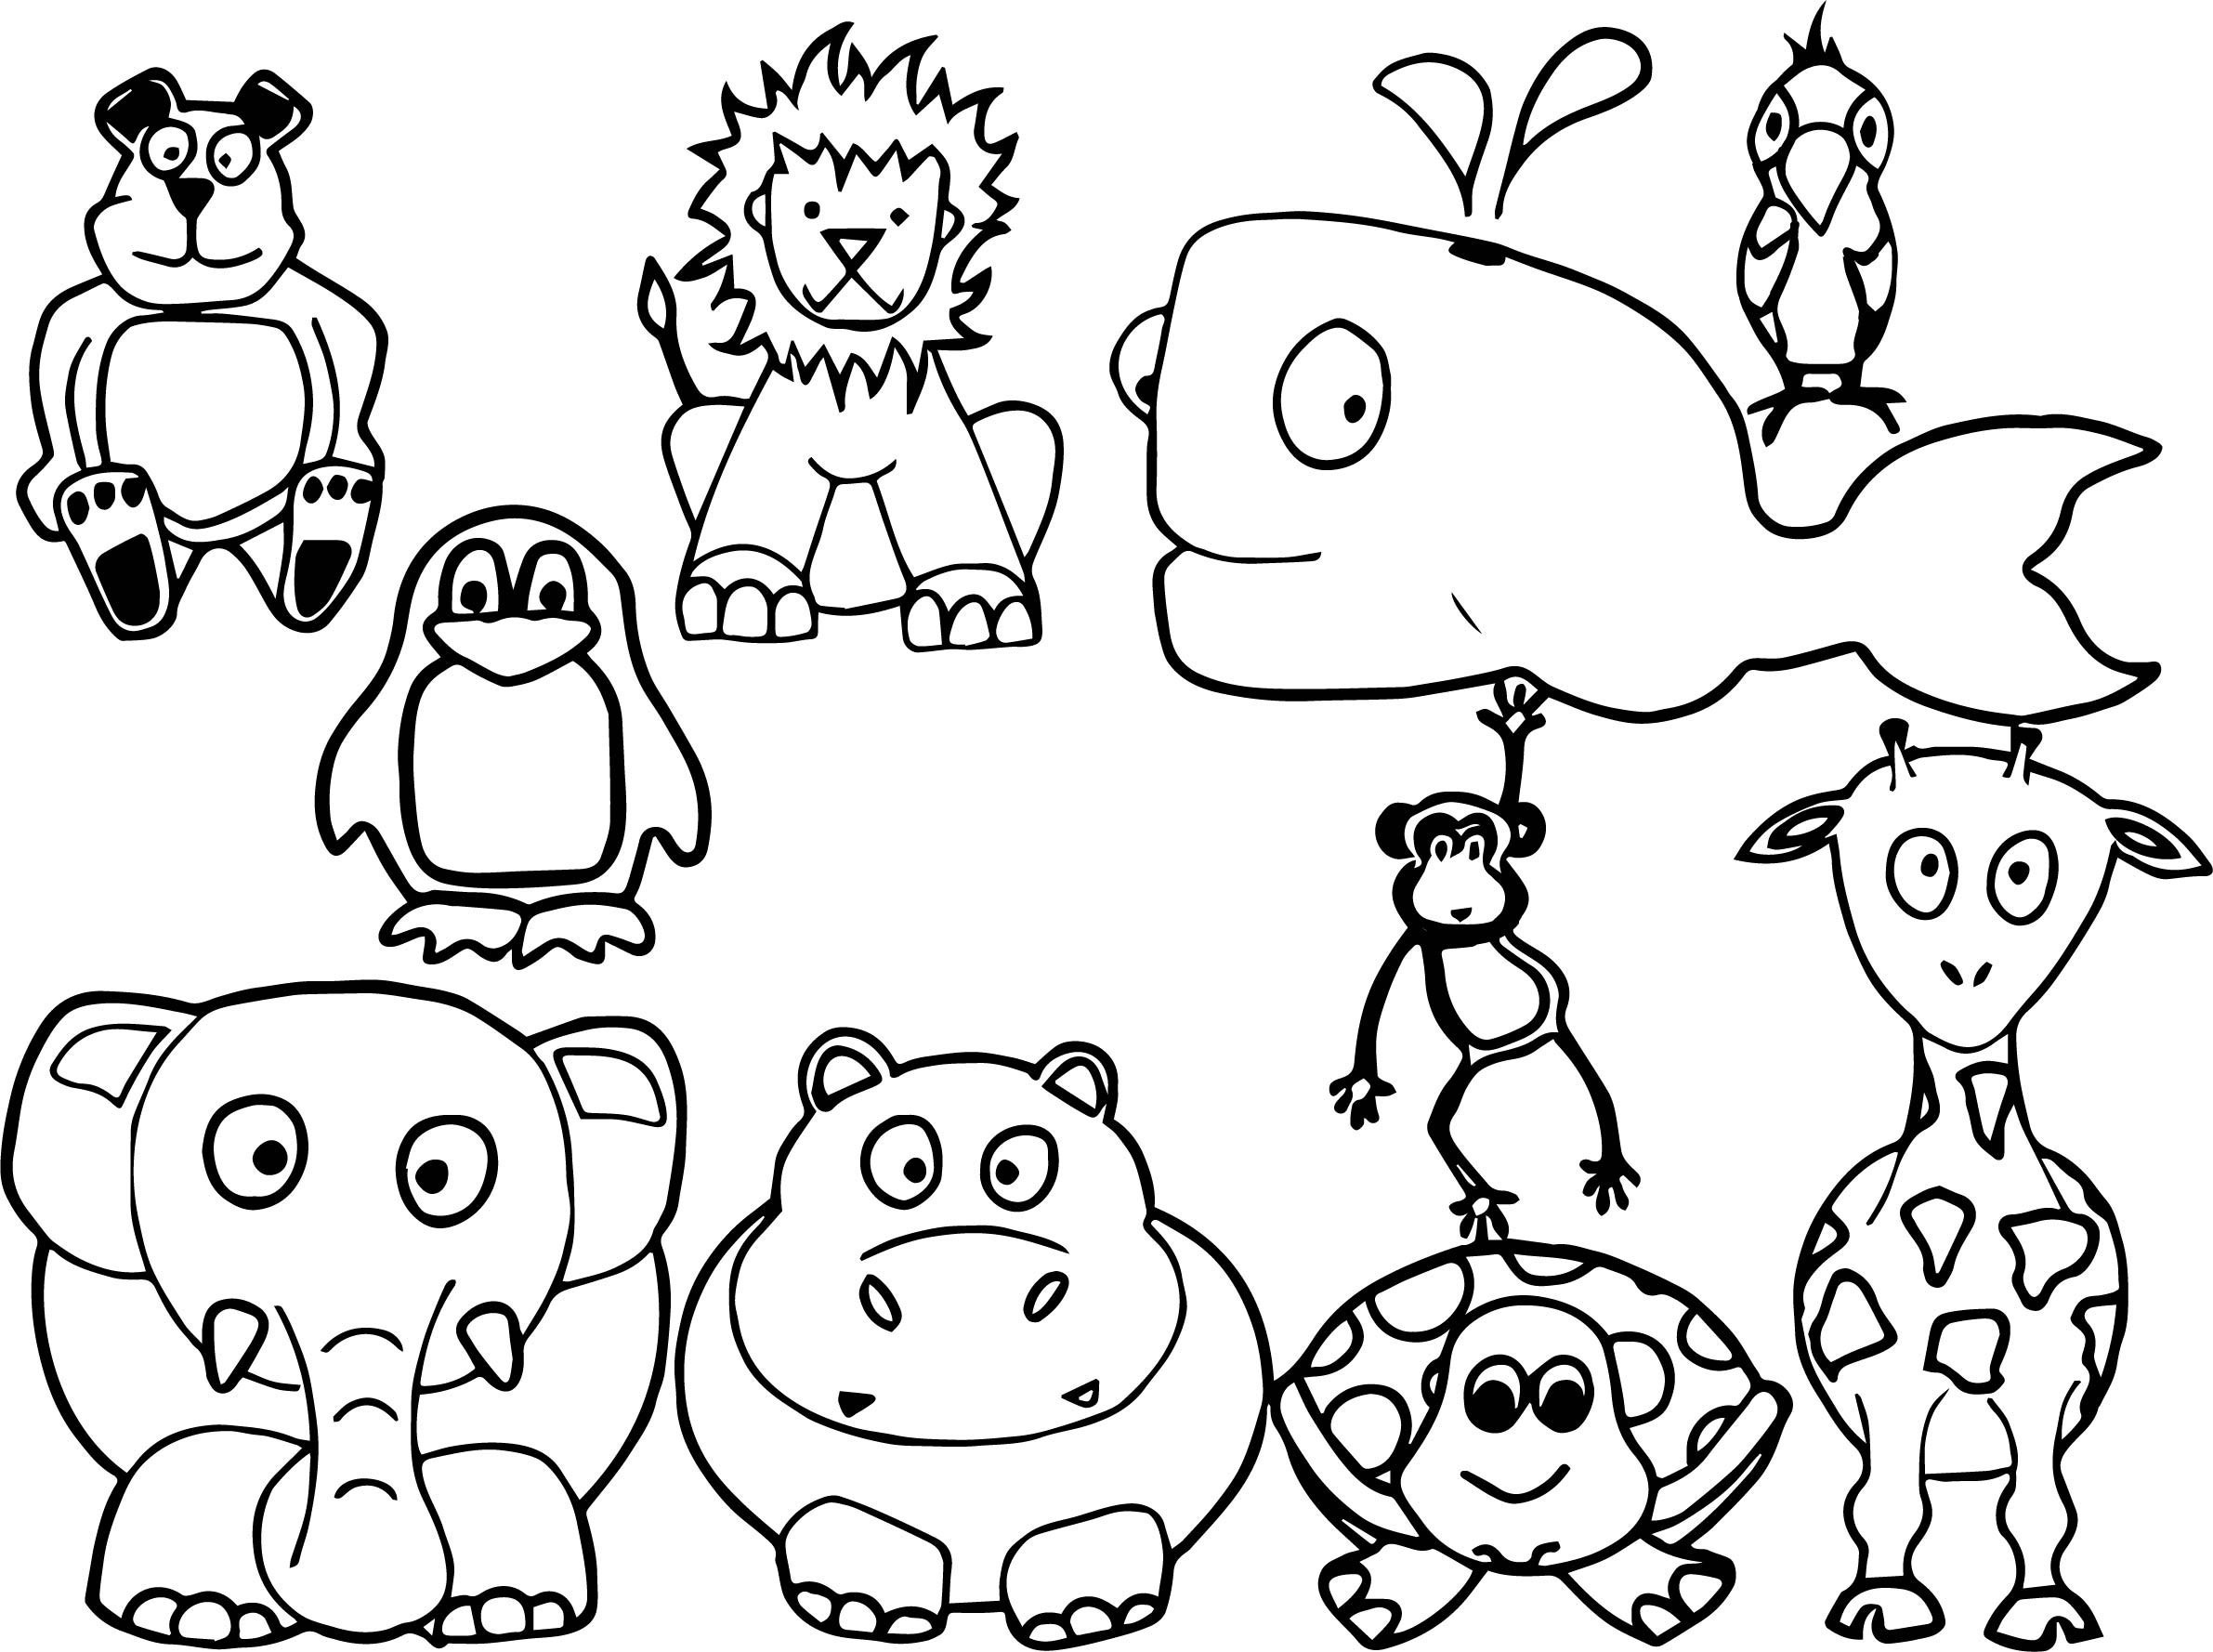 free printable animal colouring pages for education new animal deer coloring pages animal free printable pages colouring